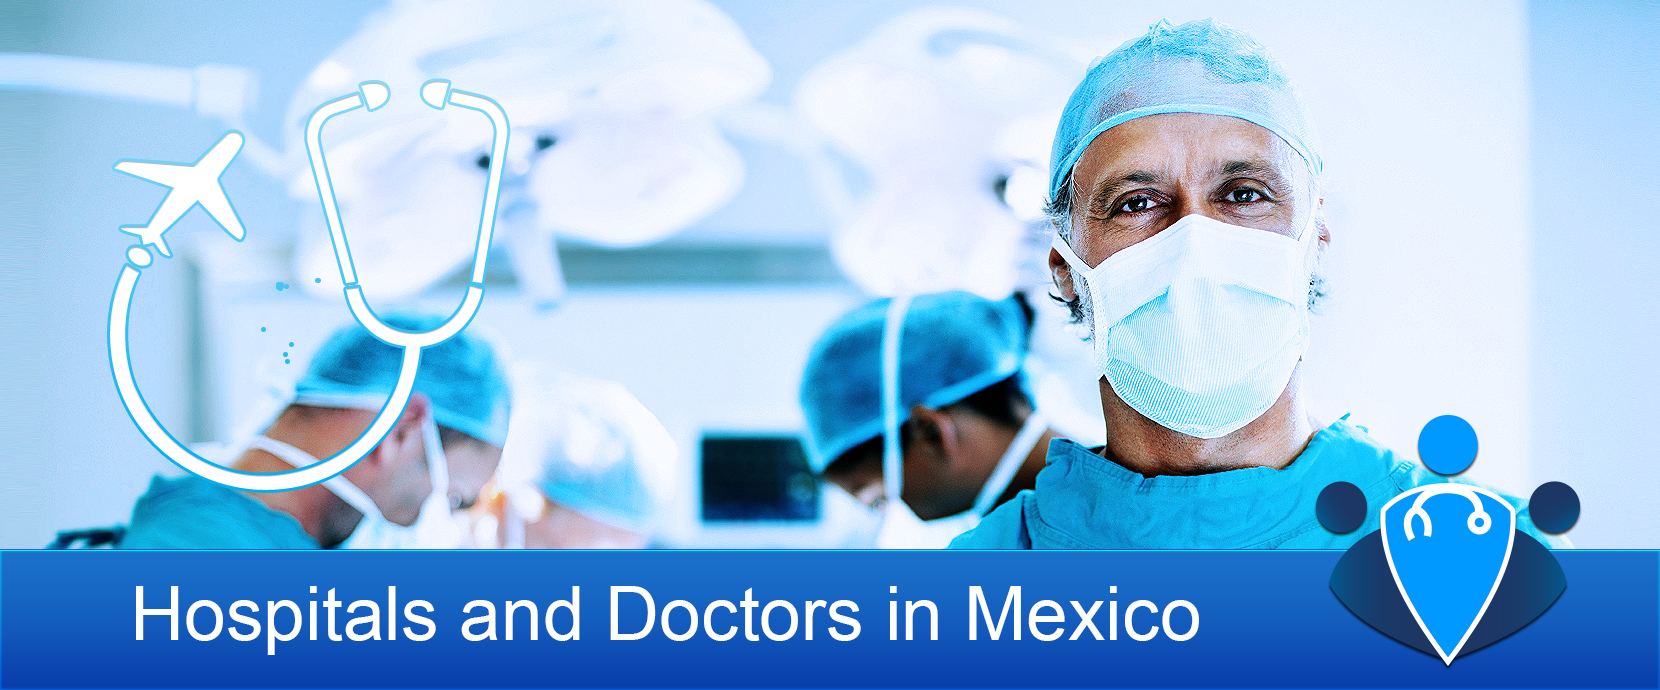 Medical Tourism in Mexico. Americans and Canadians can anticipate saving up to 50% in medical procedure costs in Mexico.